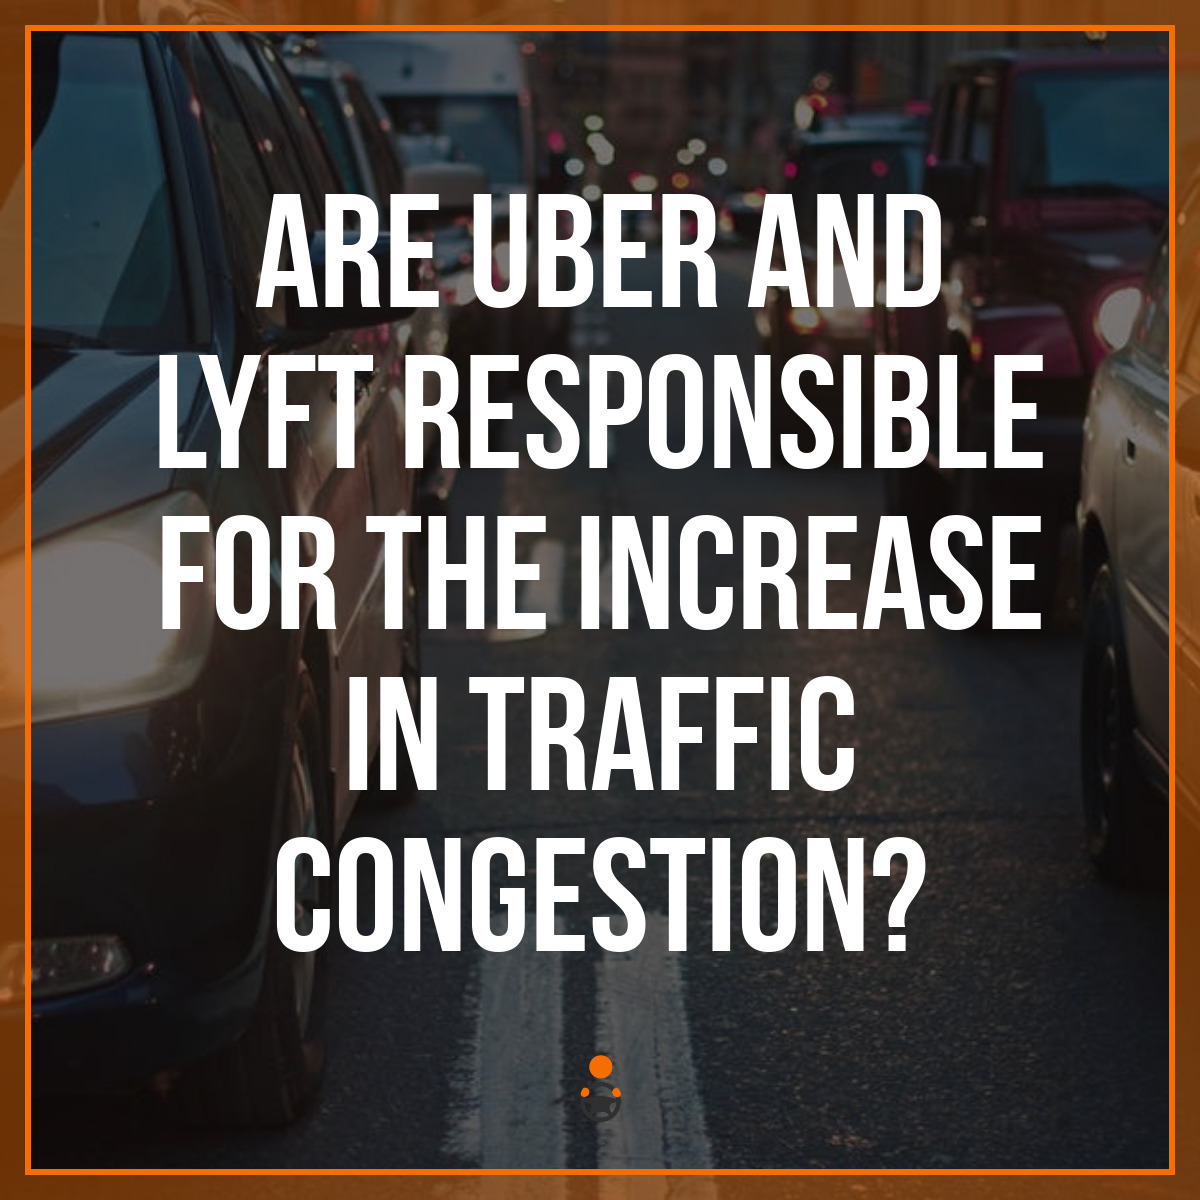 Are Uber and Lyft Responsible for the Increase in Traffic Congestion?